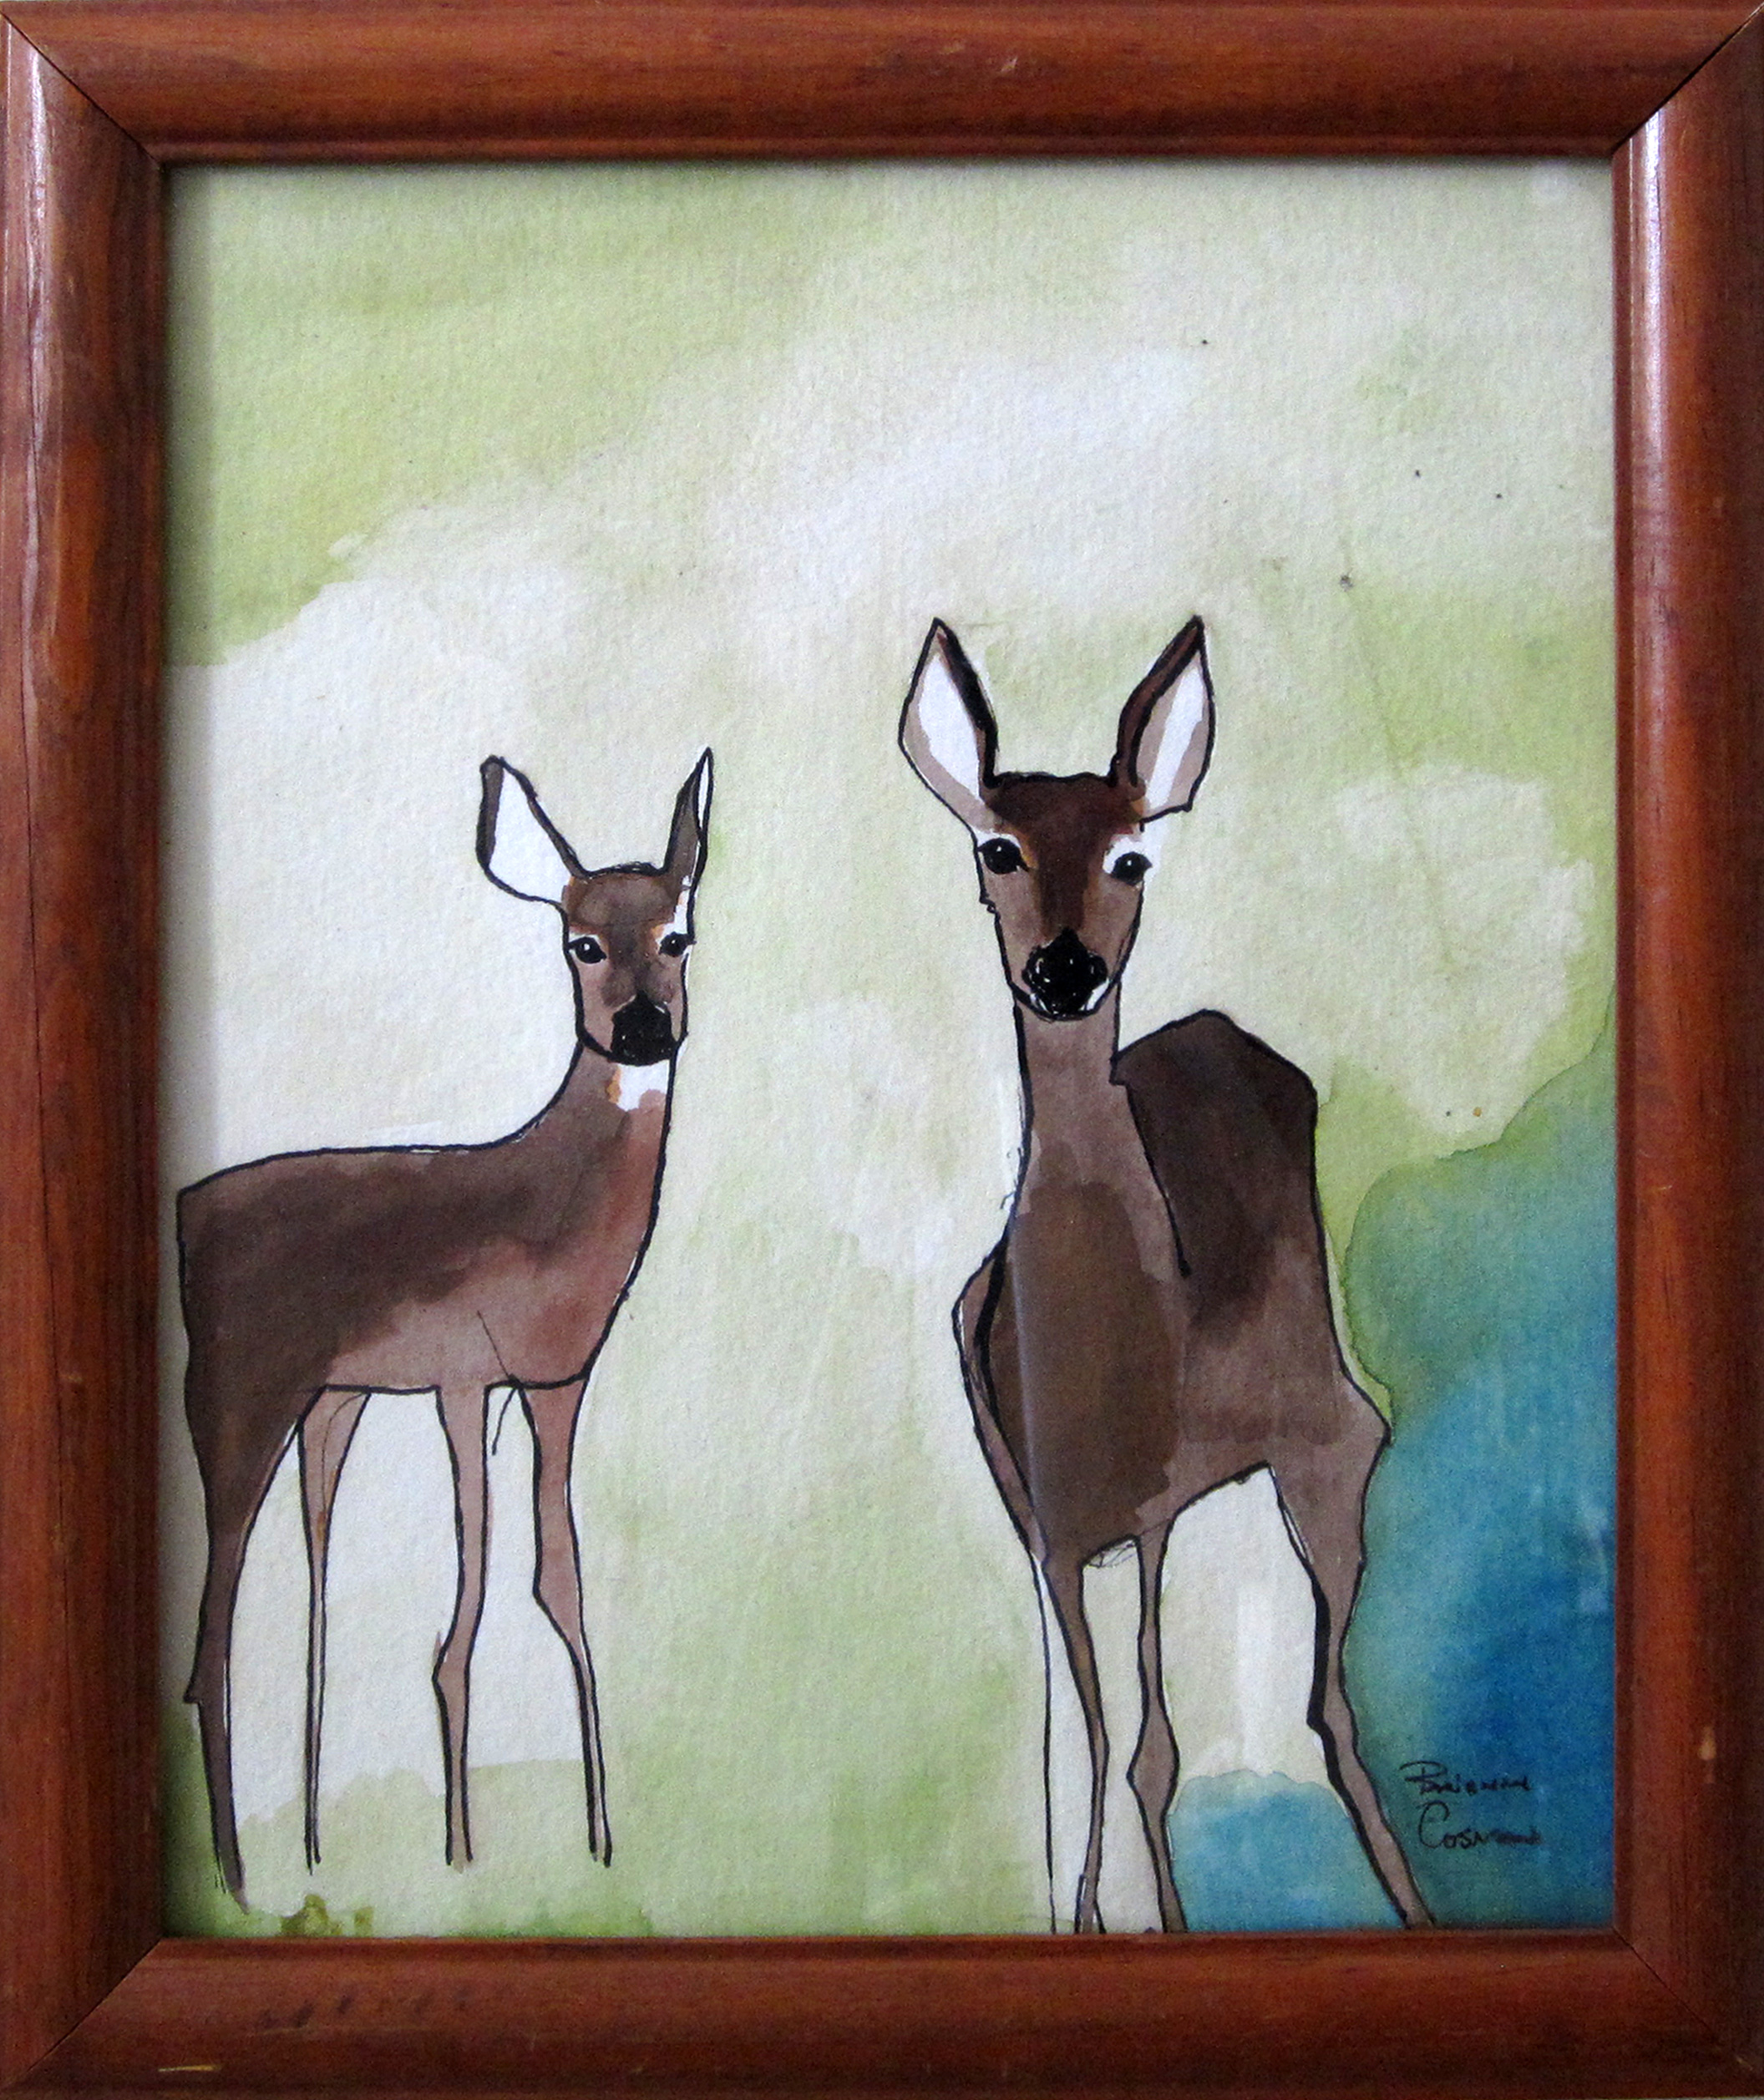 25: Deer on my Lawn -Sold